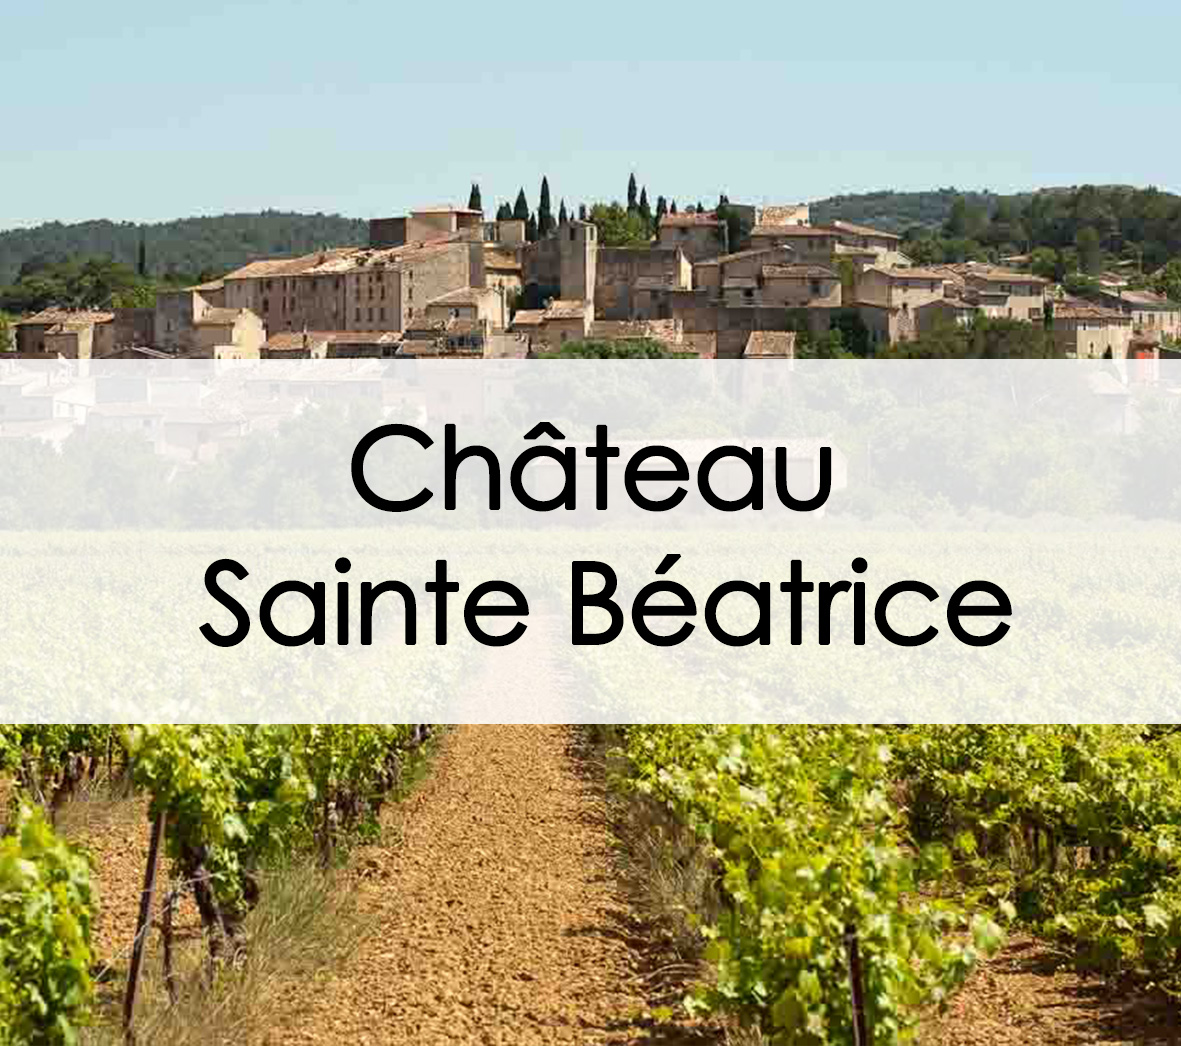 chateau stainte beatrice